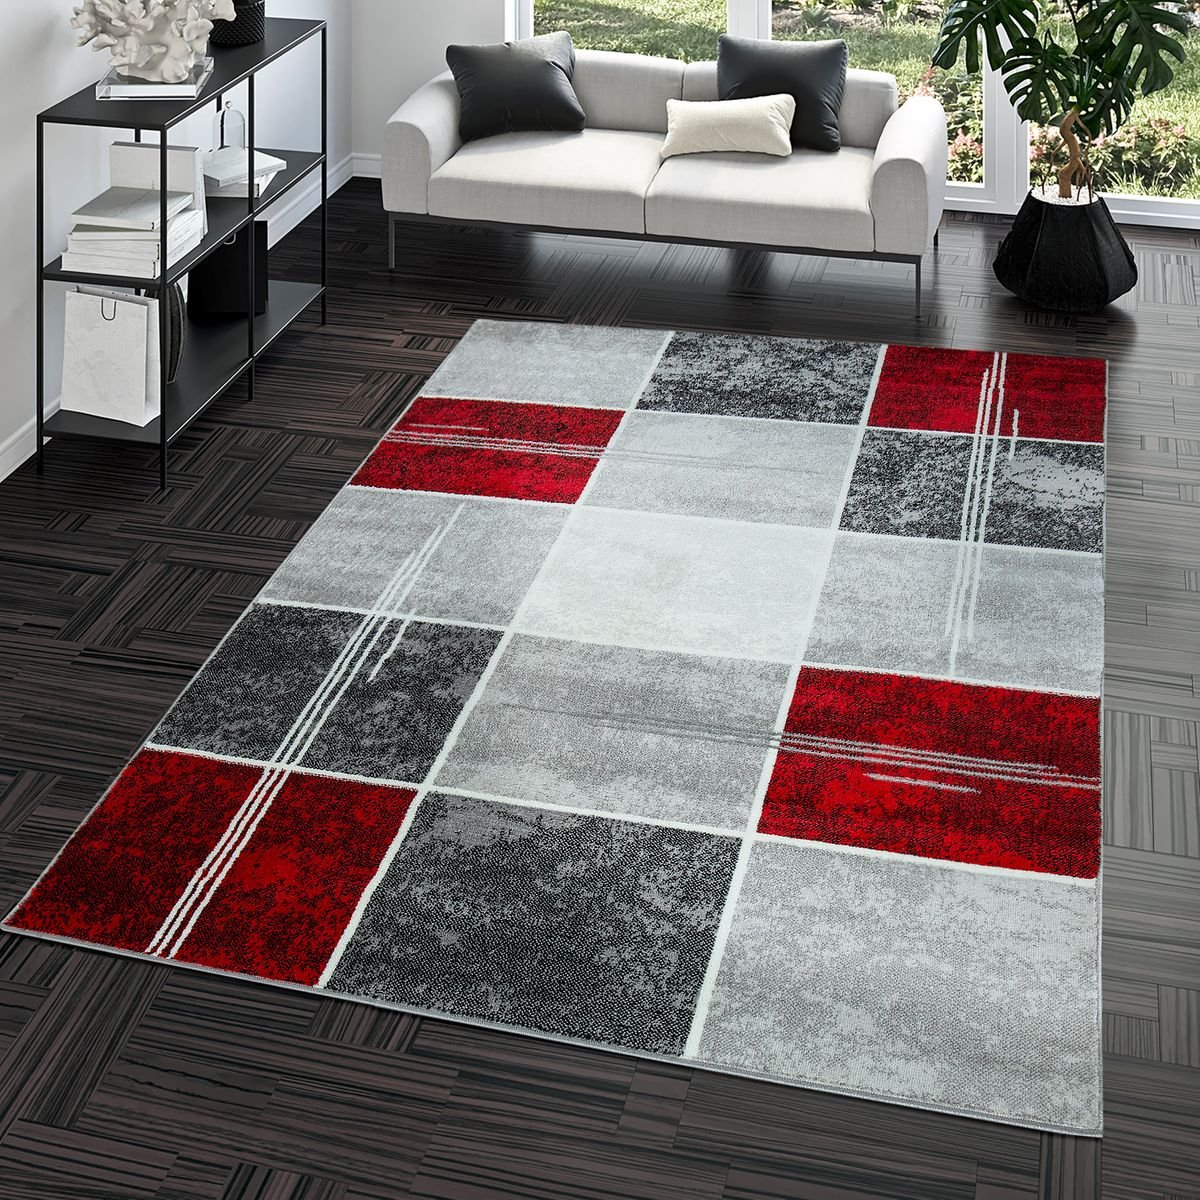 Rug Reasonable Check Design Modern Living Room Rug Grey Red Top Price, Size:60x100 cm T&T Design